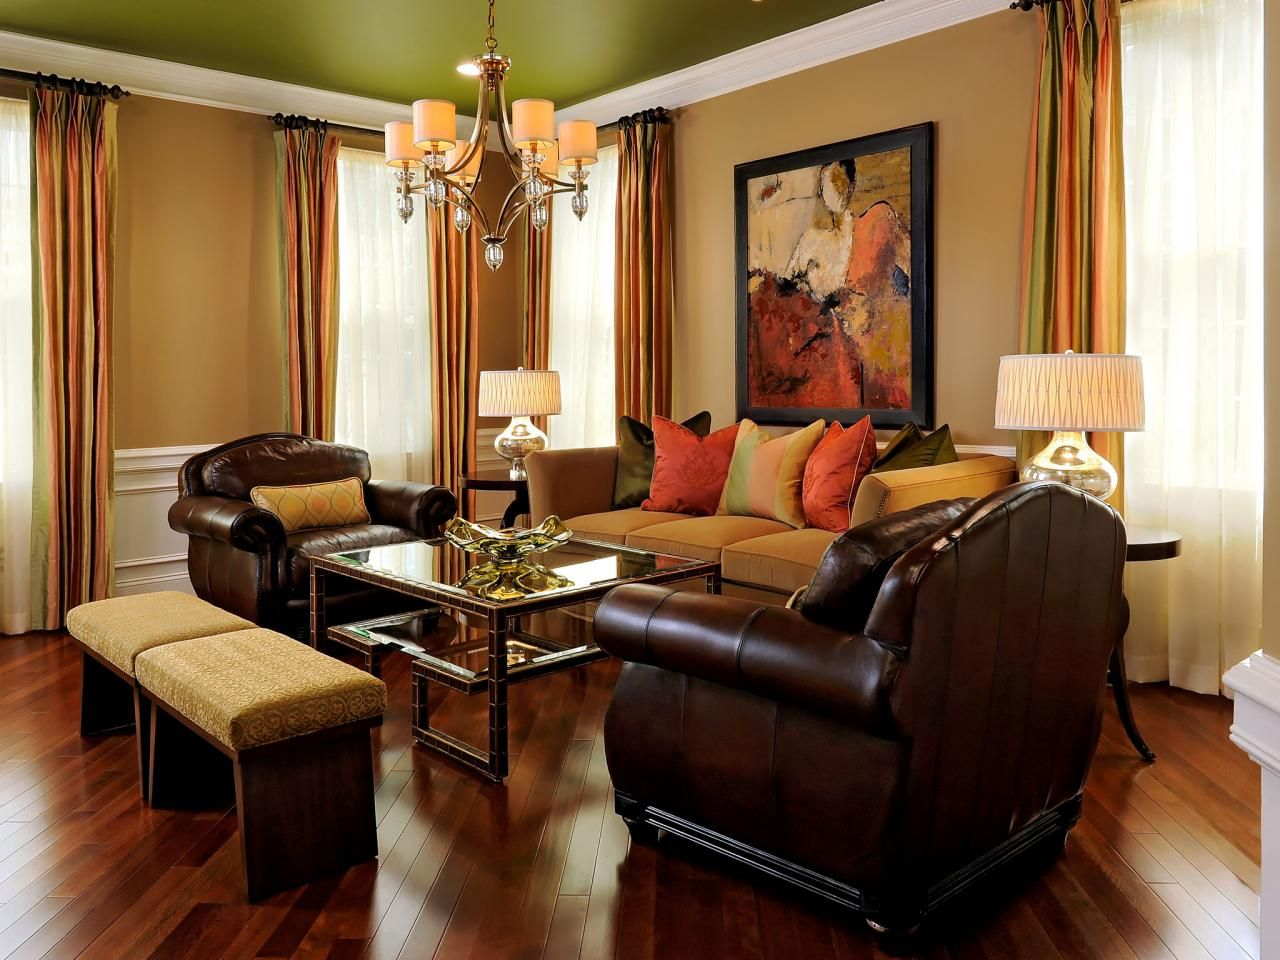 Color infuses every corner of this living room starting with the